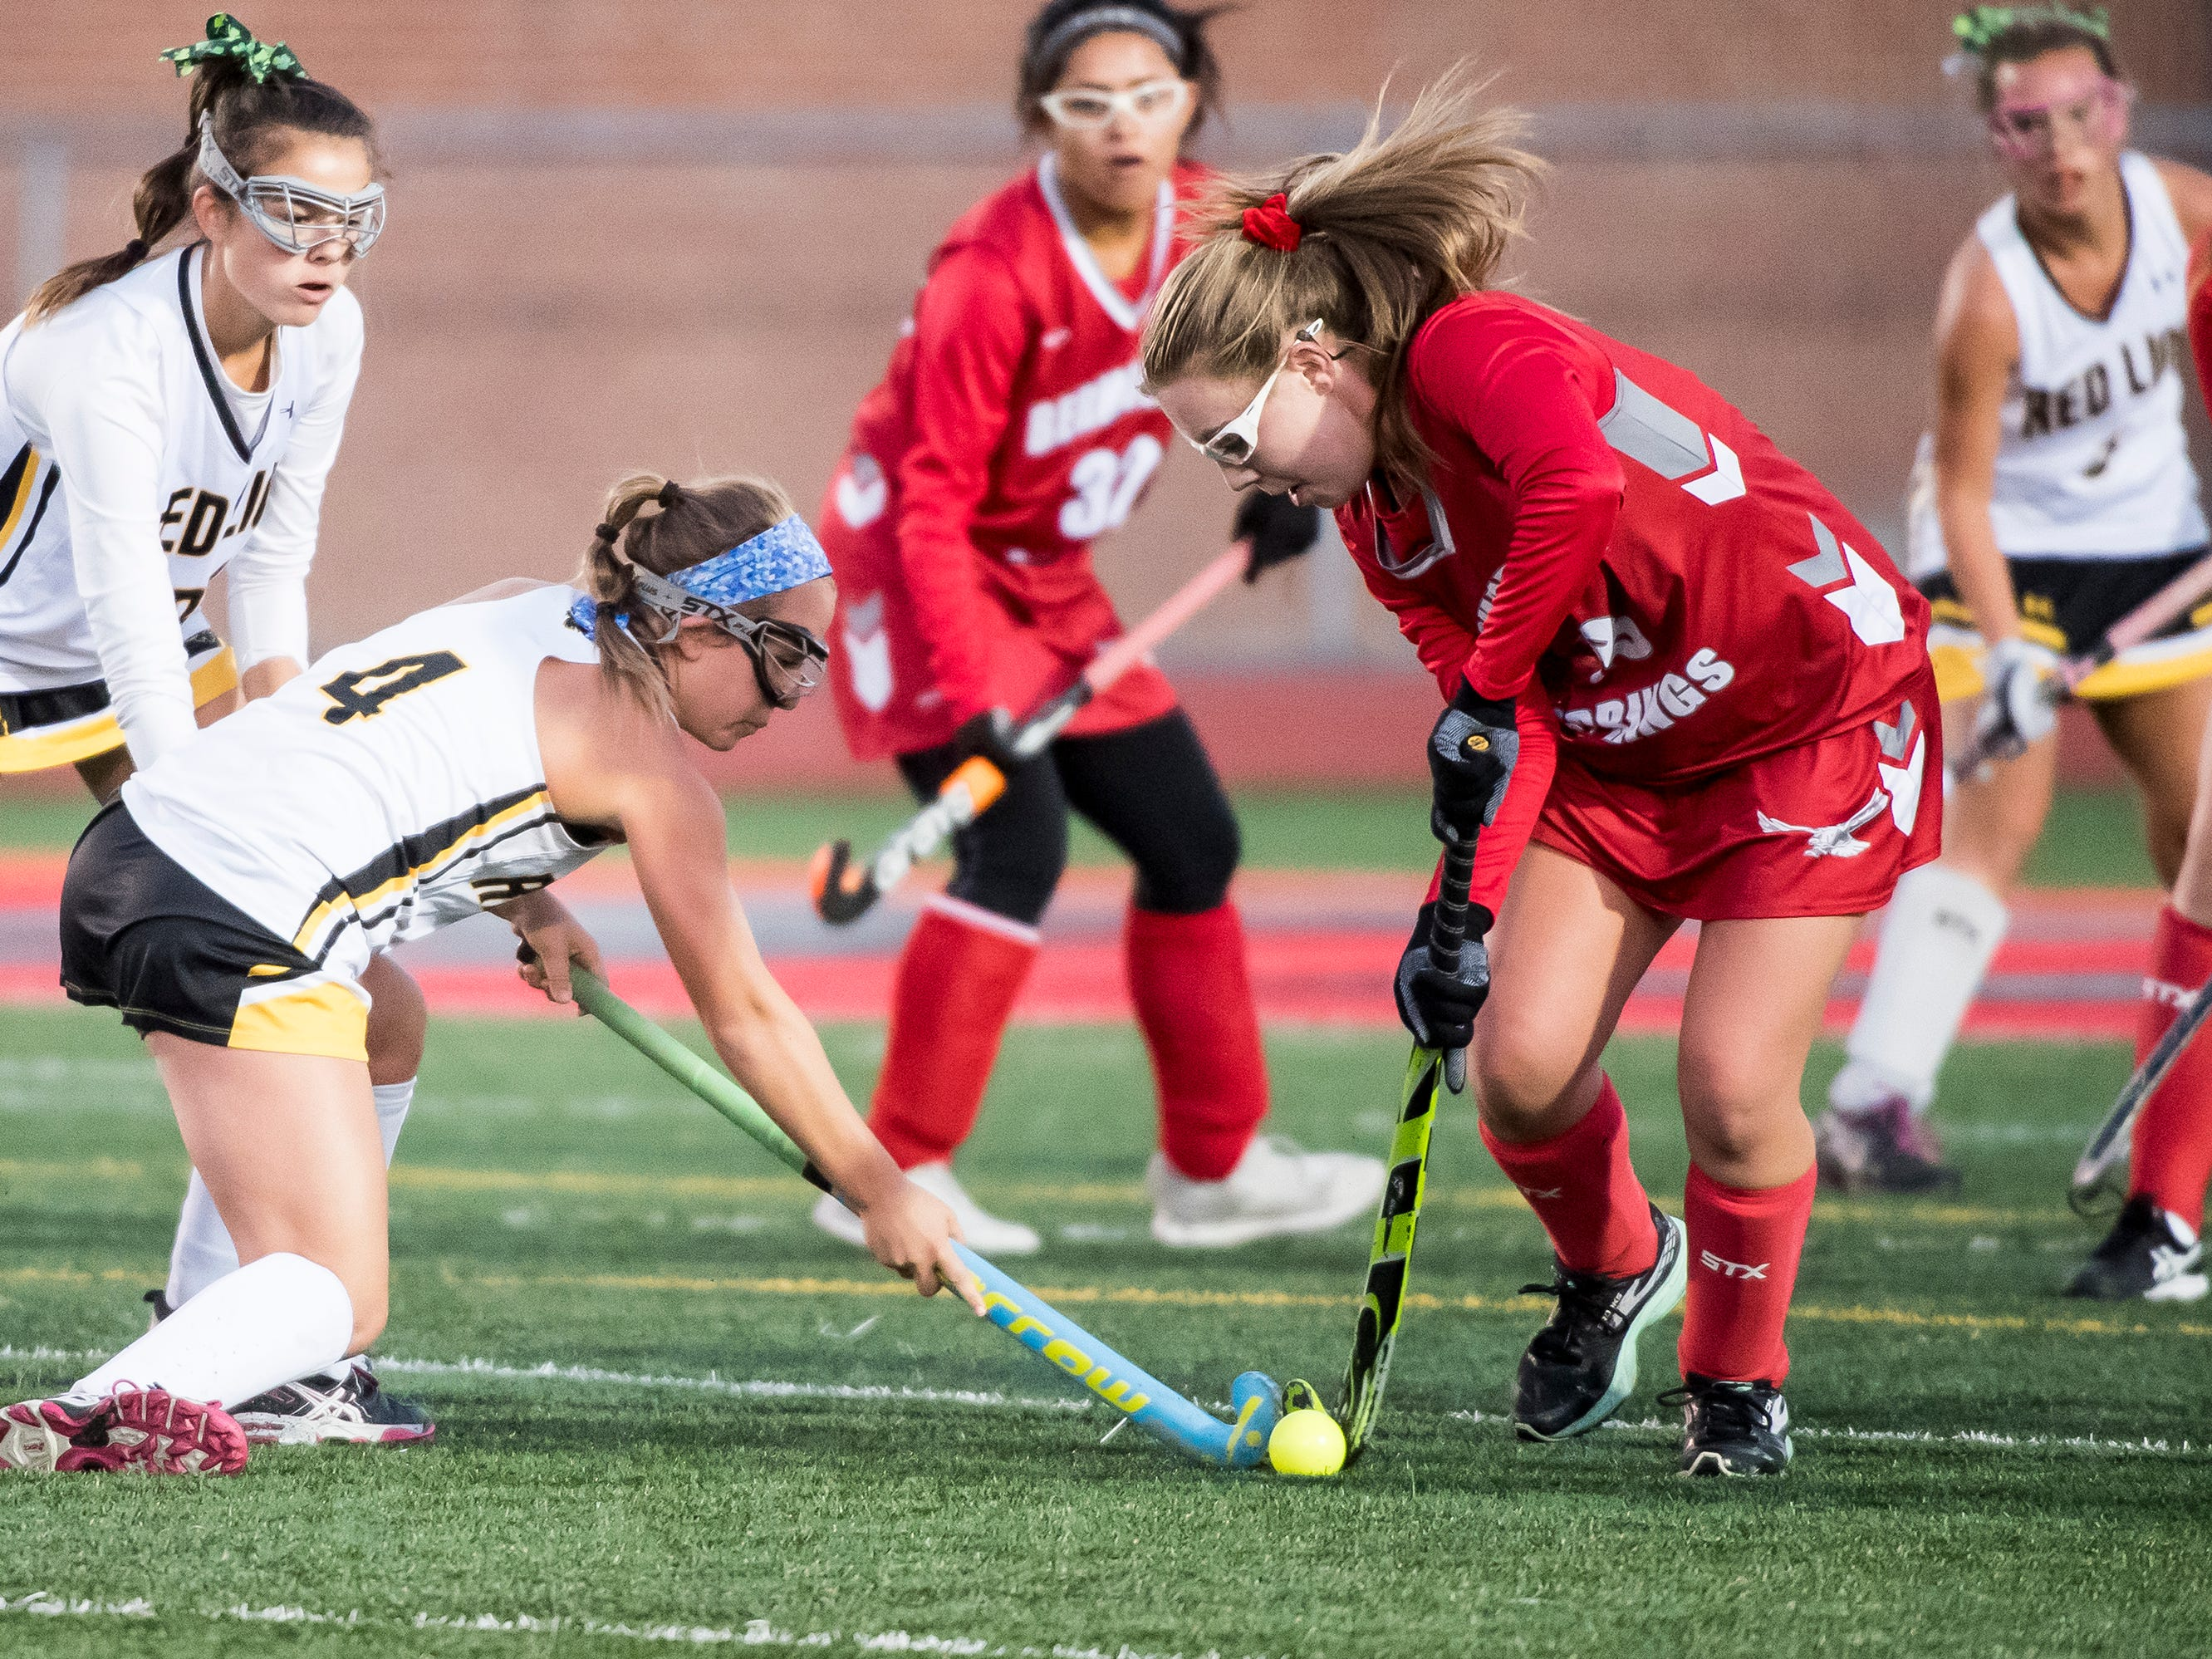 Bermudian Springs' Grace Metzger works around Red Lion's Emma Waltemyer during a YAIAA tournament semifinal game on Thursday, October 18, 2018. The Eagles won 2-0 and will play Central York in the championship game Saturday.